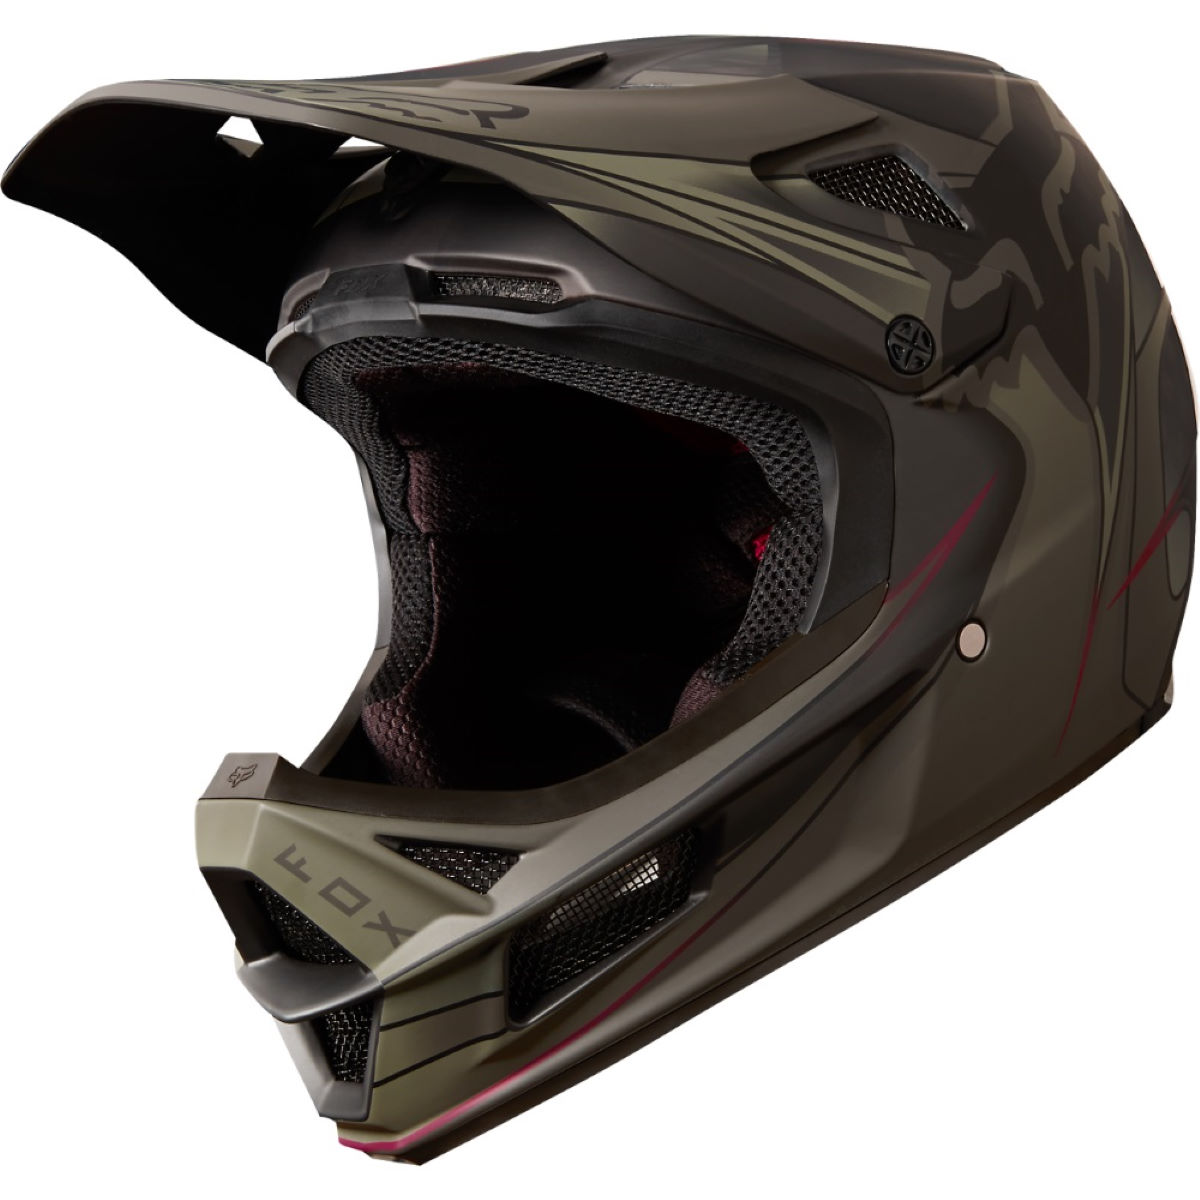 Casque Fox Racing Rampage Pro Carbon Kustom - S Noir/Noir Casques